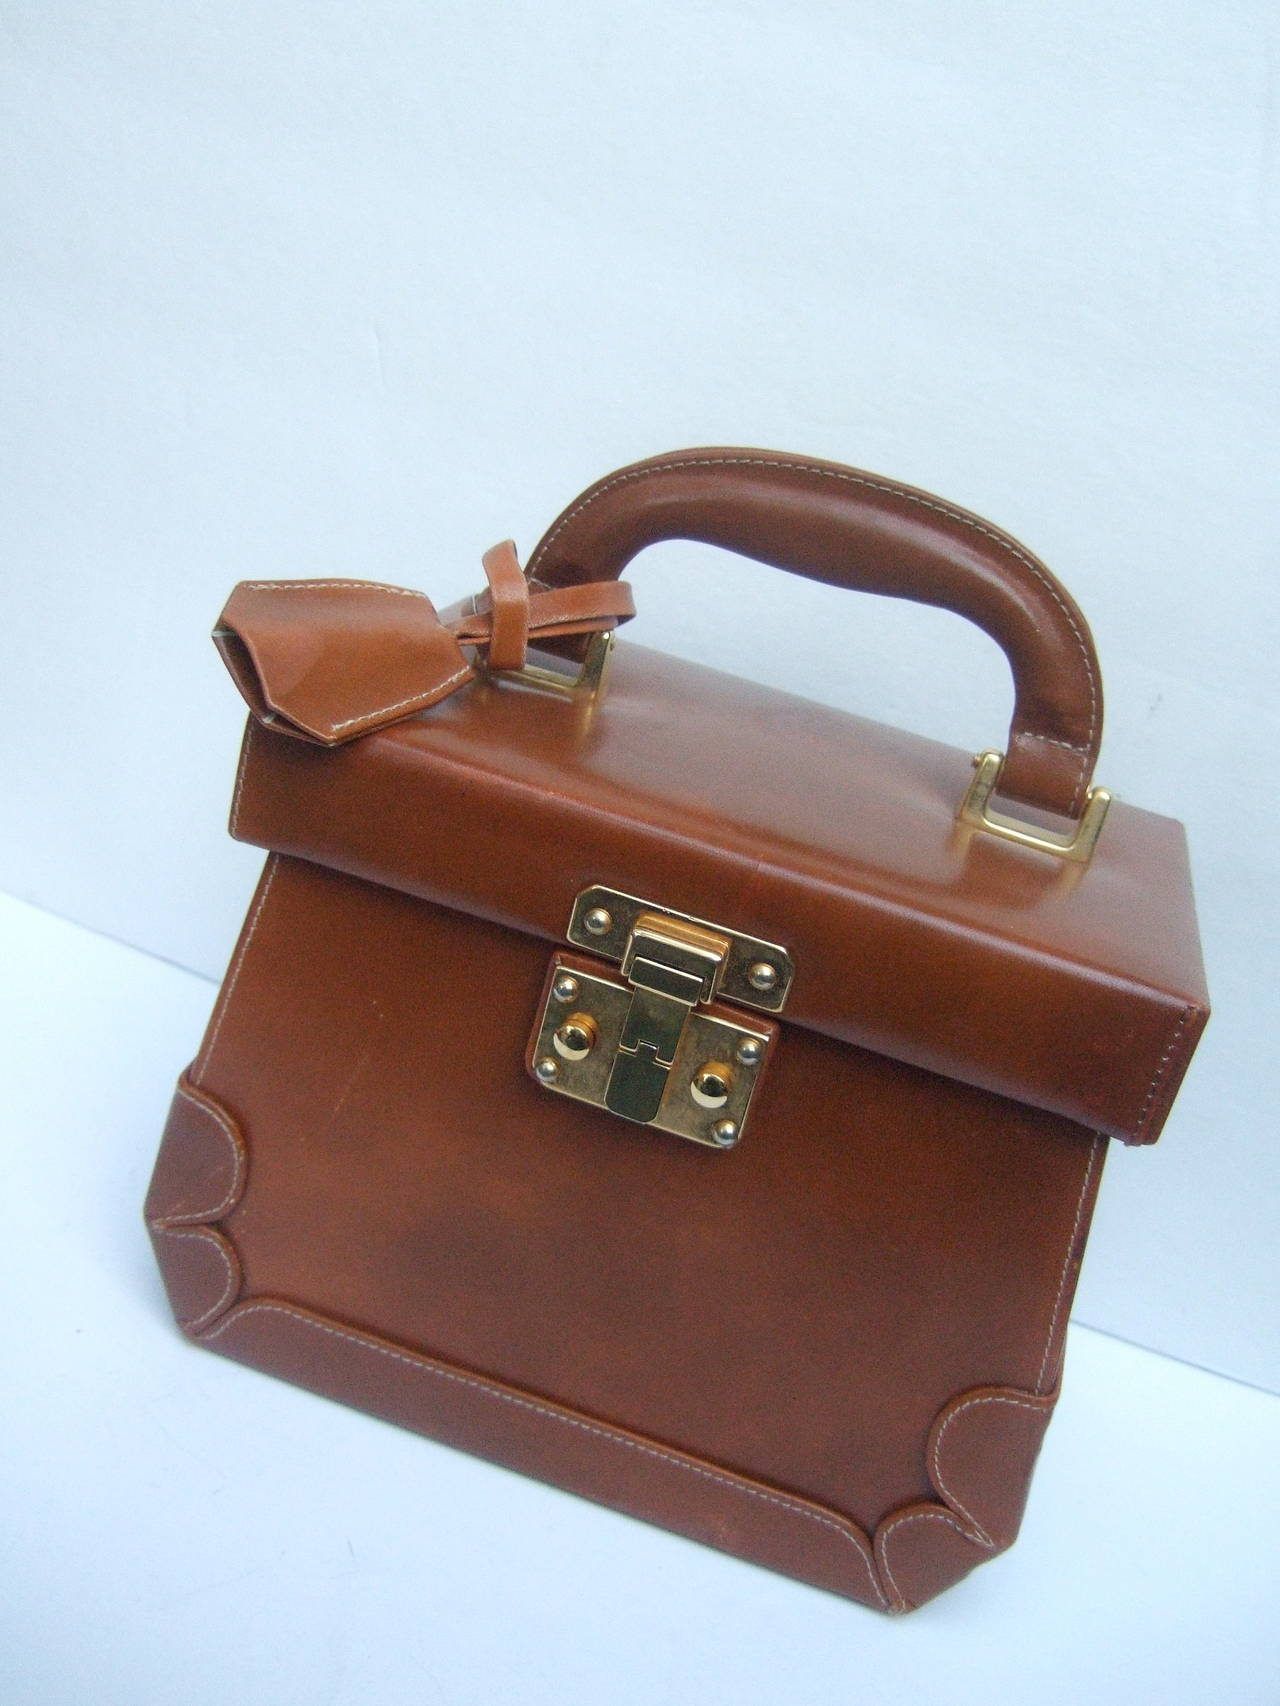 Henri Bendel Caramel Brown Leather Train Case Handbag Made In Italy Good Condition For